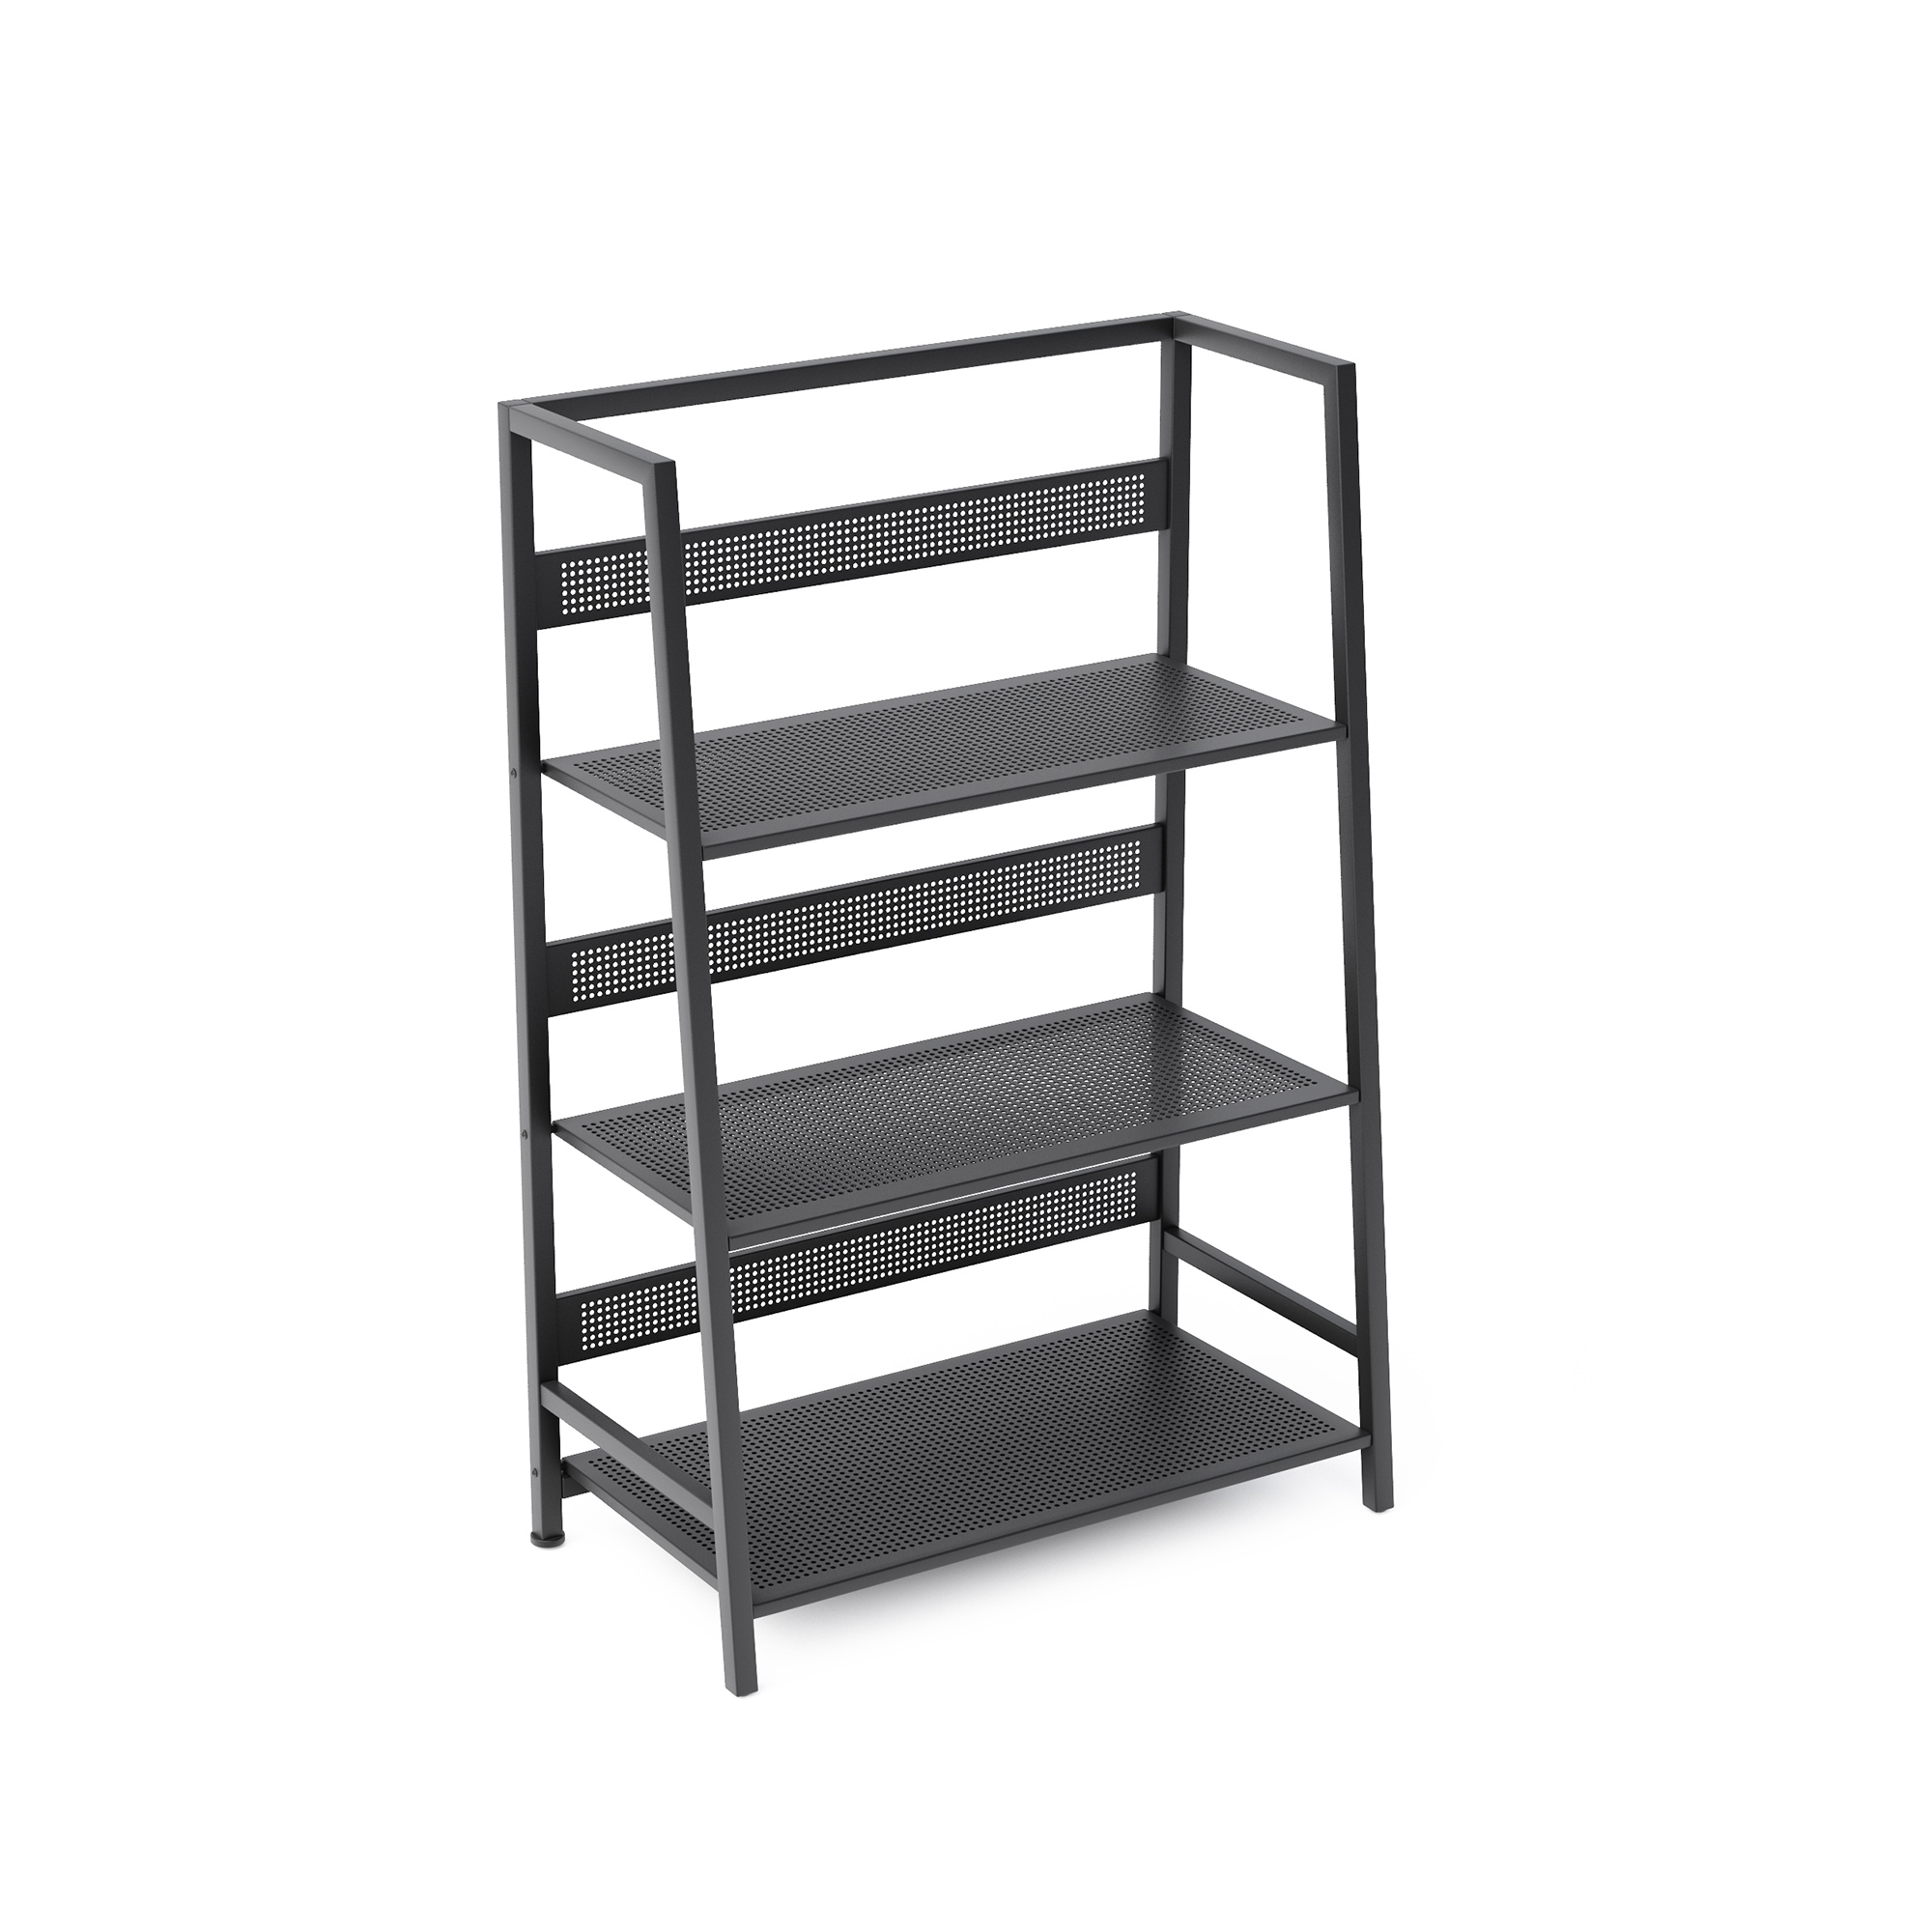 Dandy 3 Tier Folding Shelf